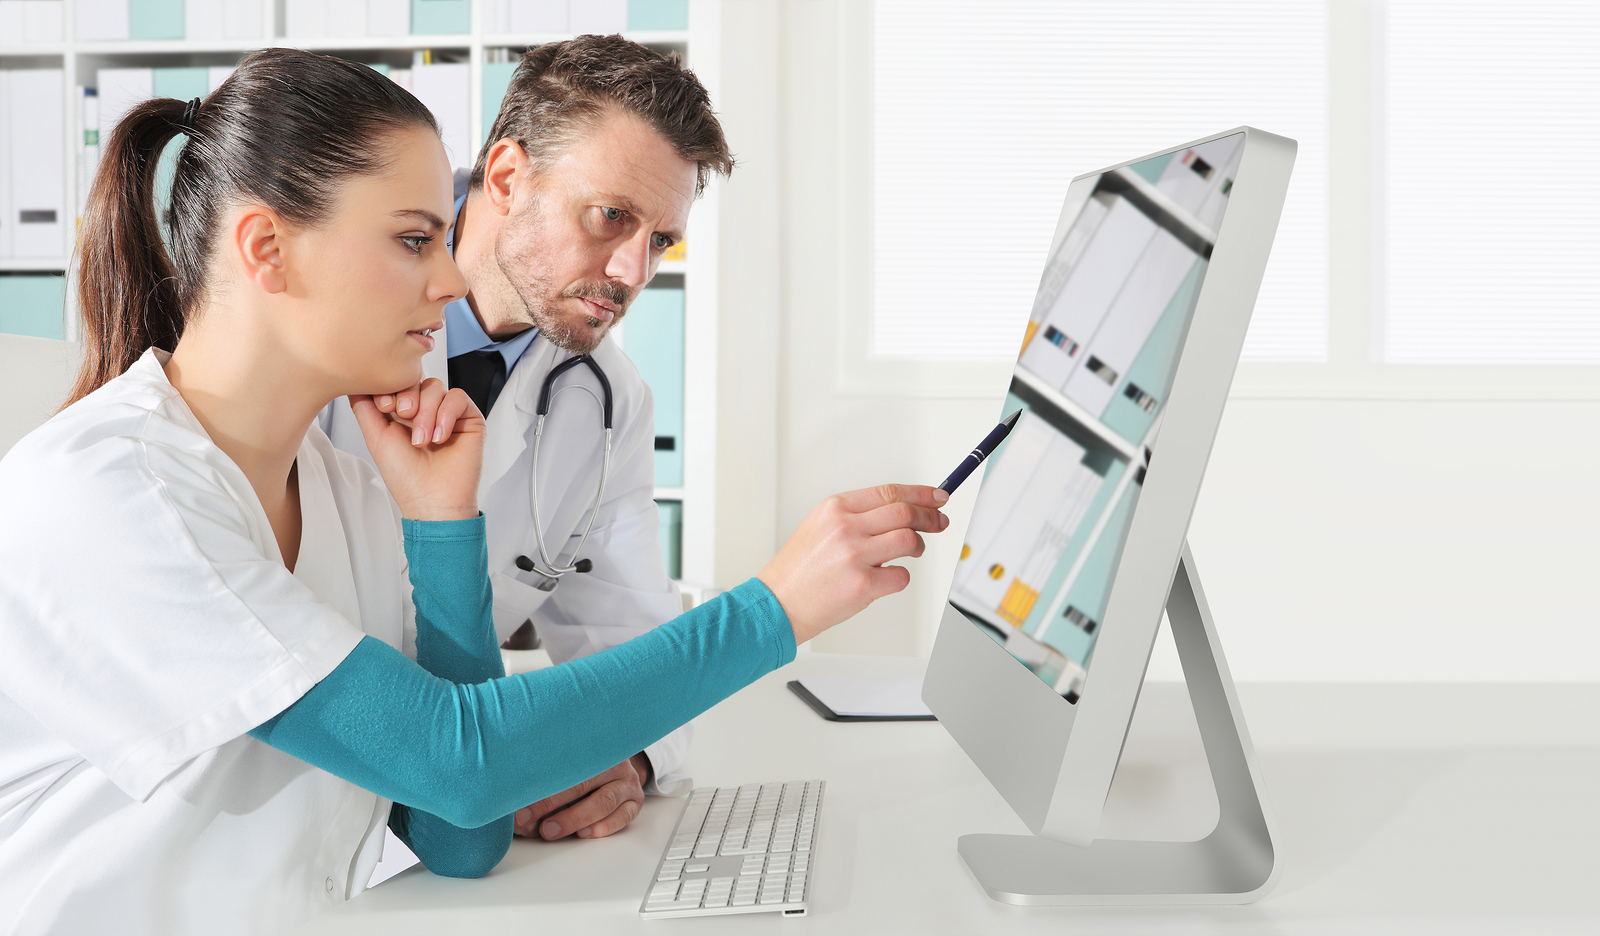 Doctor and nurse review patient information on computer screen